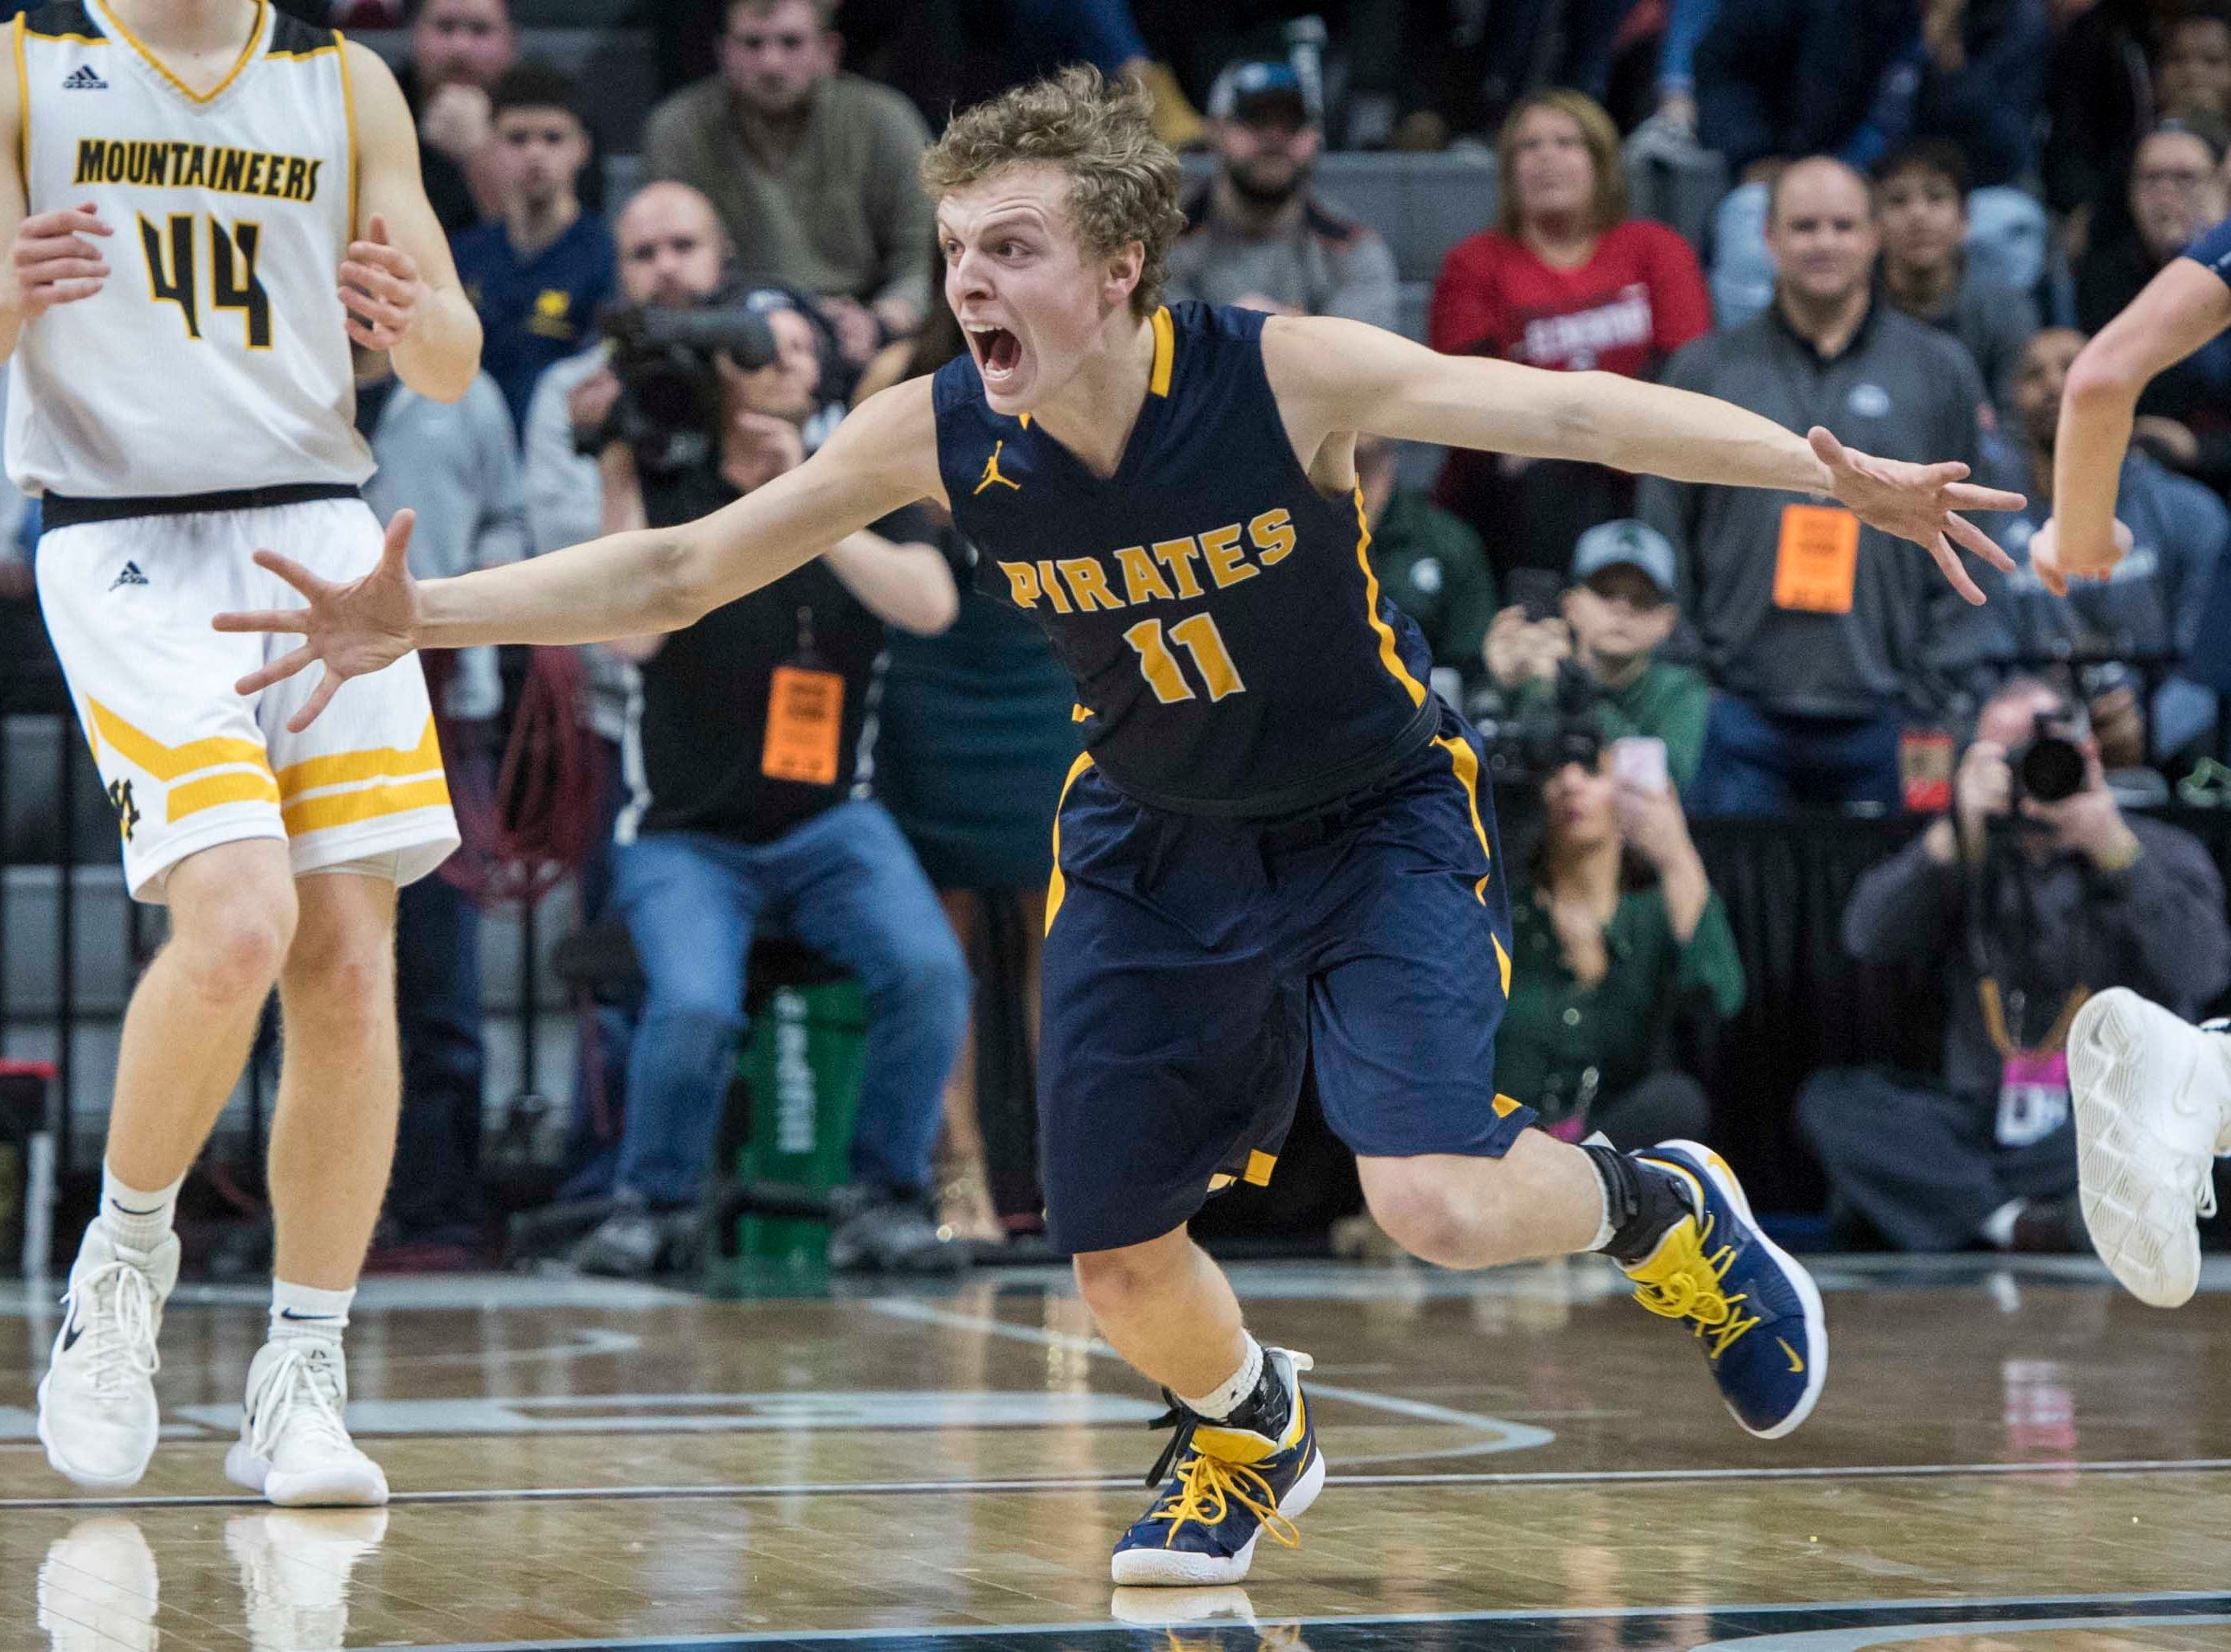 Pewamo-Westphalia's Collin Trierweiler reacts to making the game-winning point in the second half.